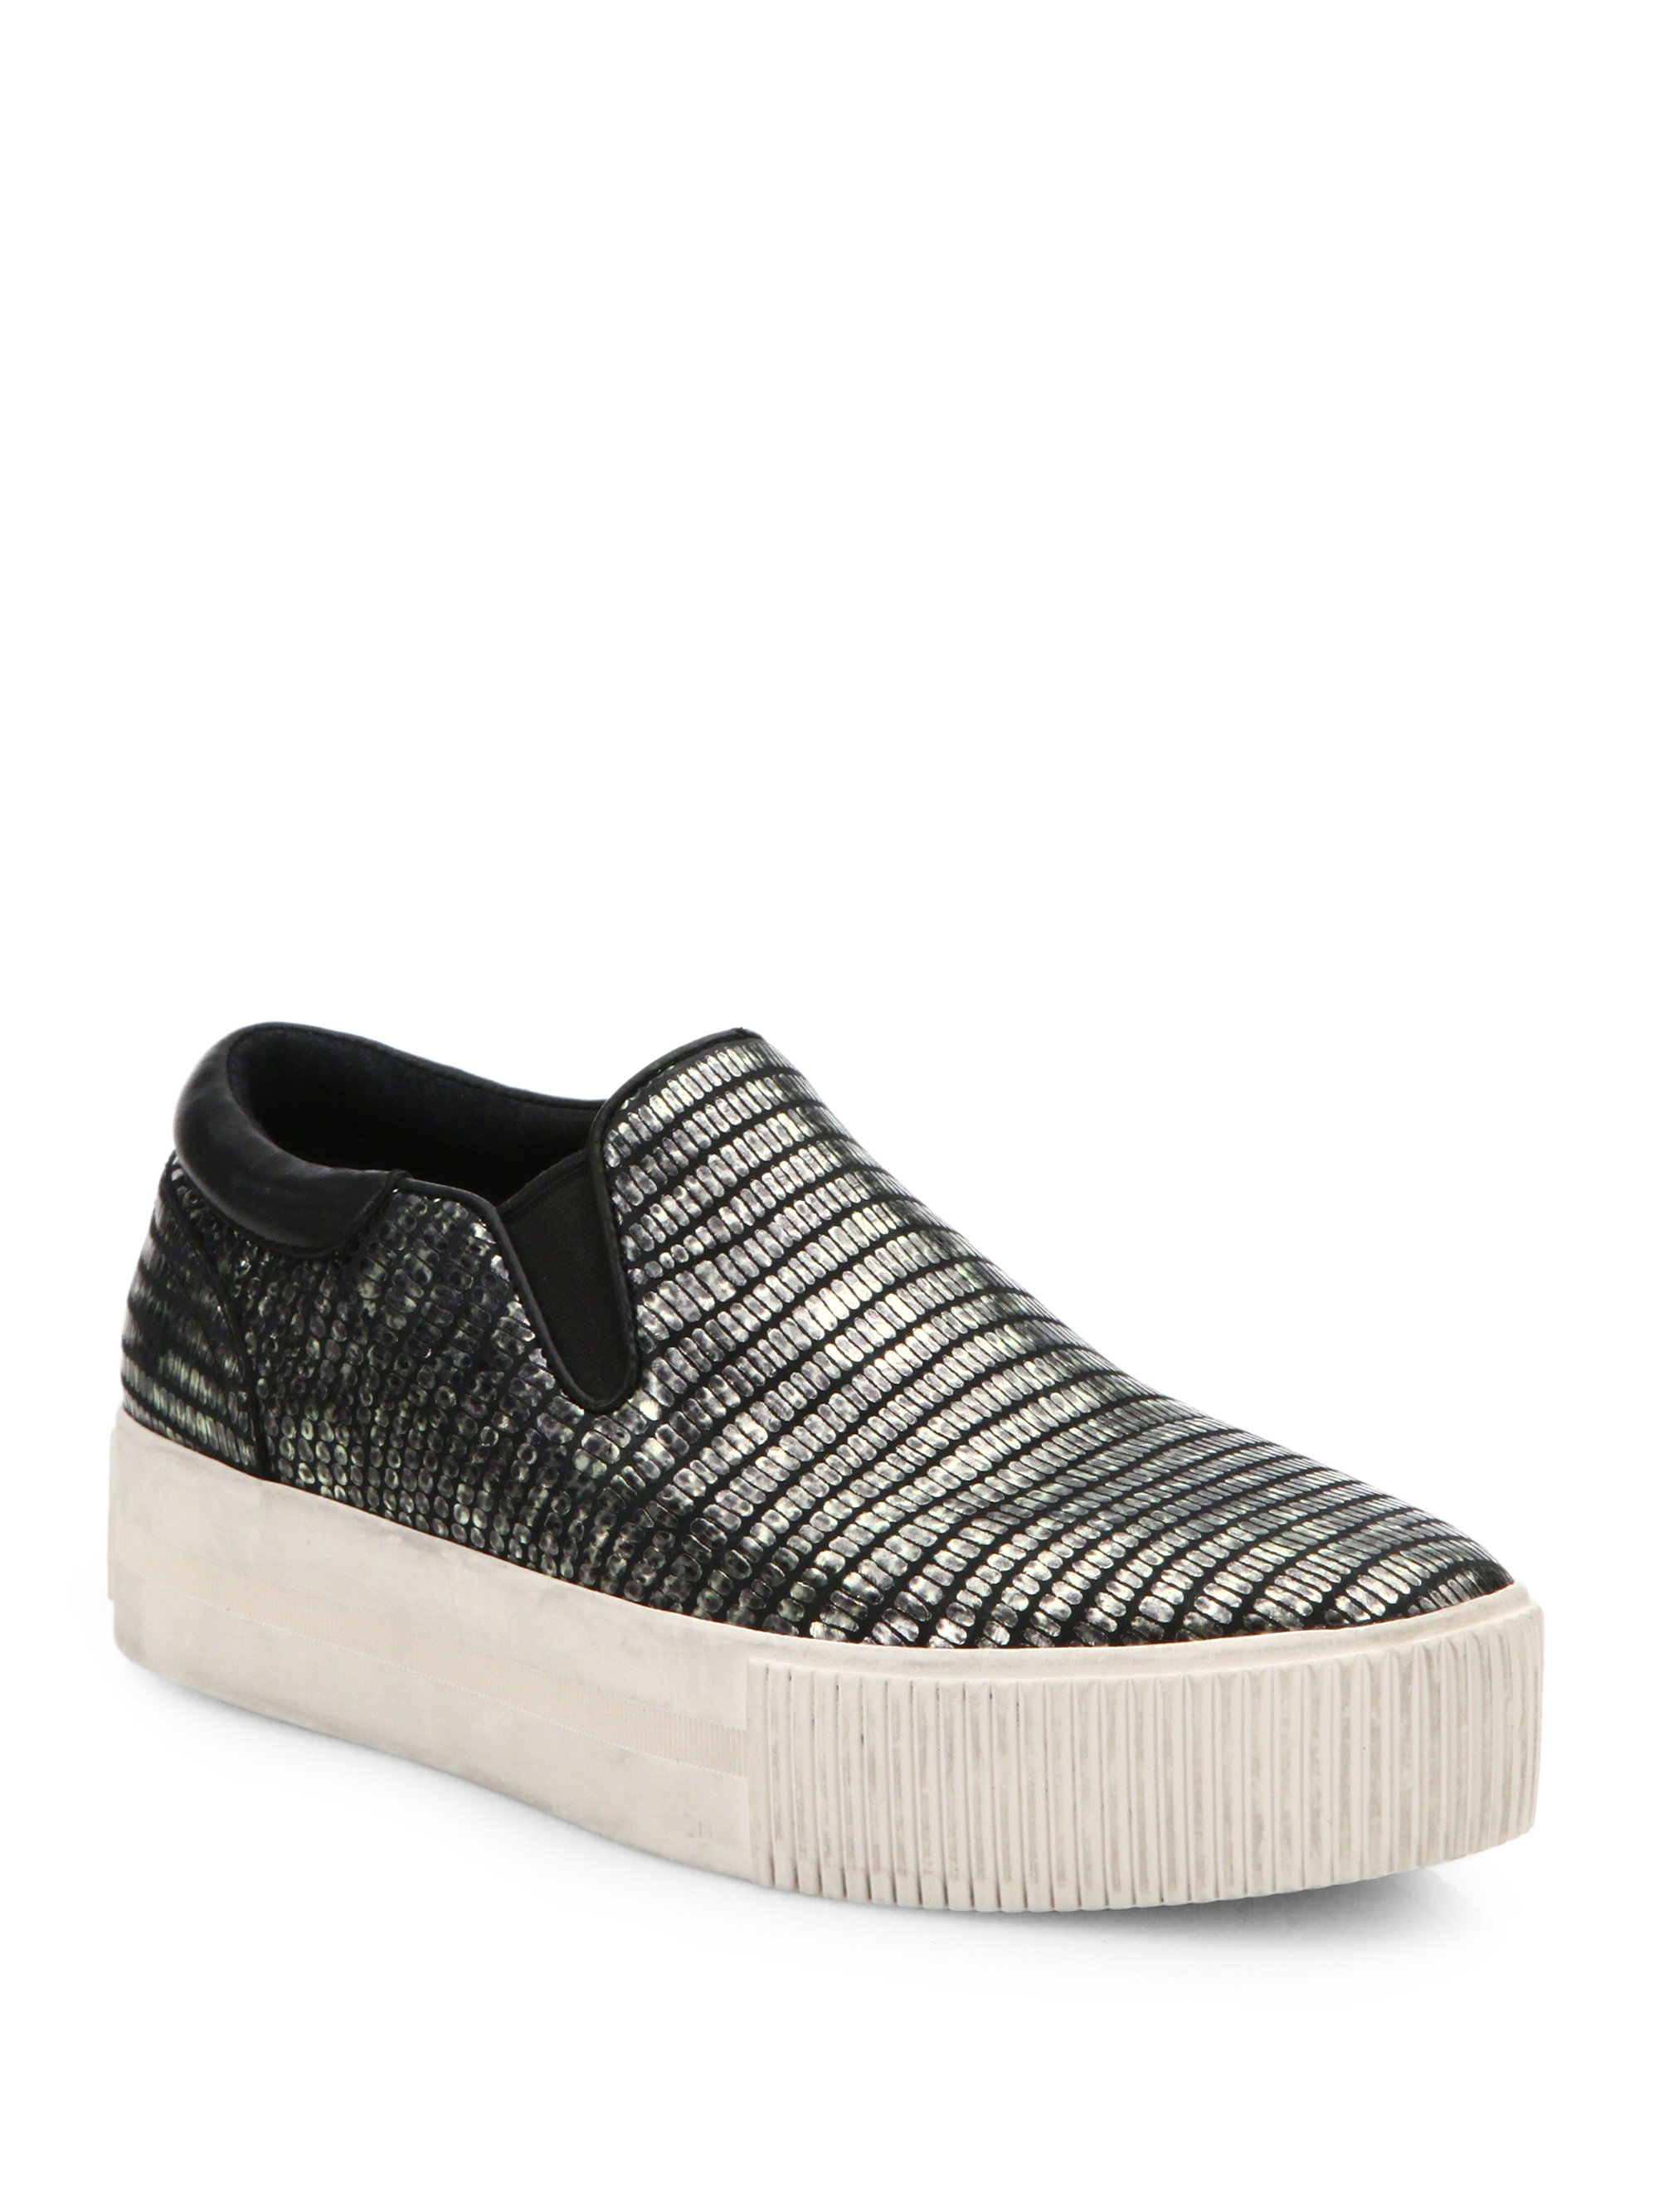 70bcdc31387ffe Lyst - Ash Karma Iridescent Leather Slip-on Platform .